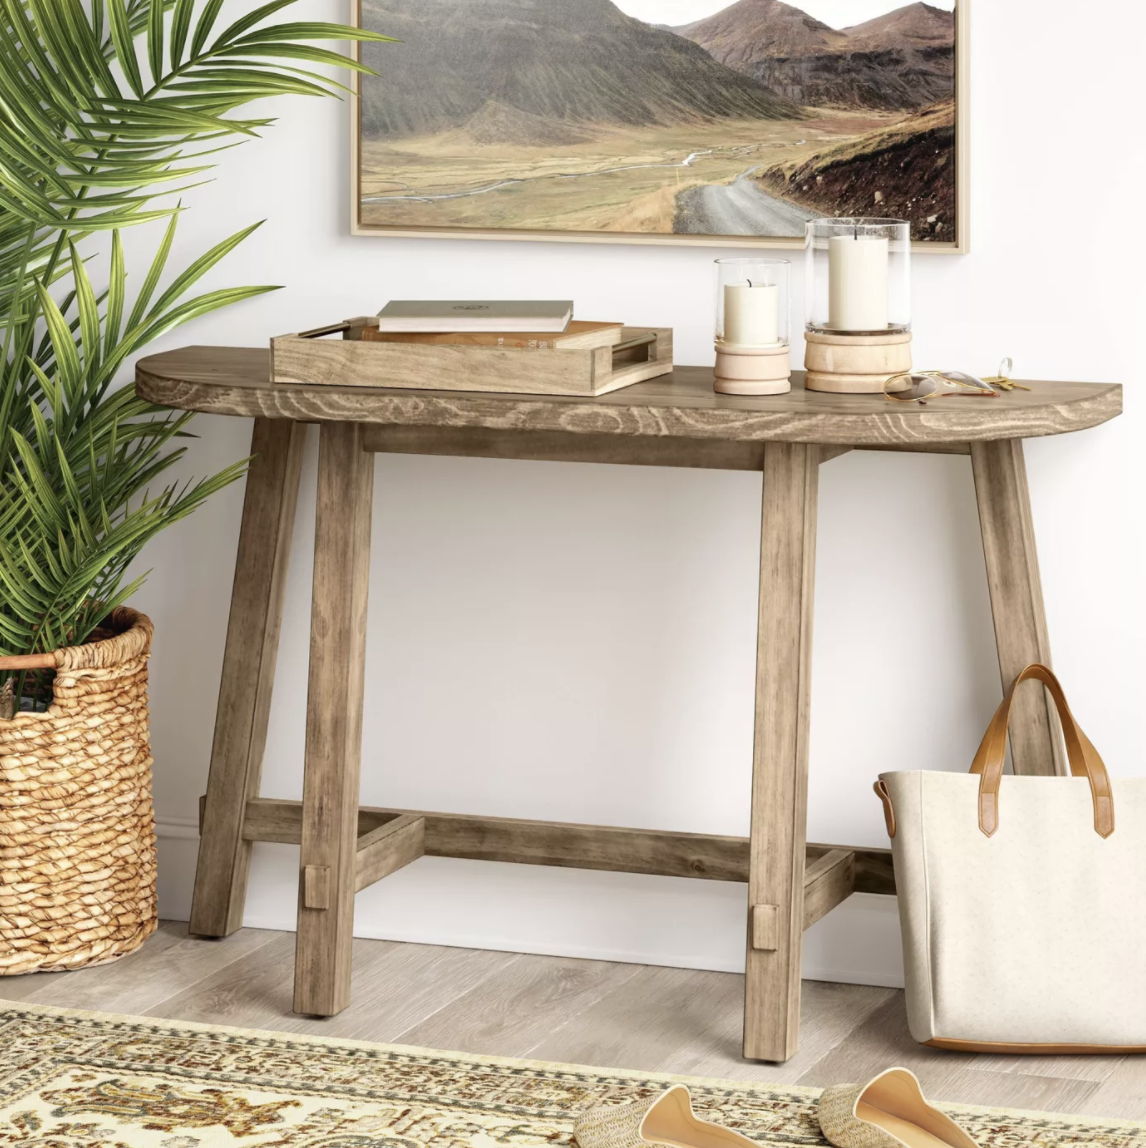 the rustic console styled in an entryway